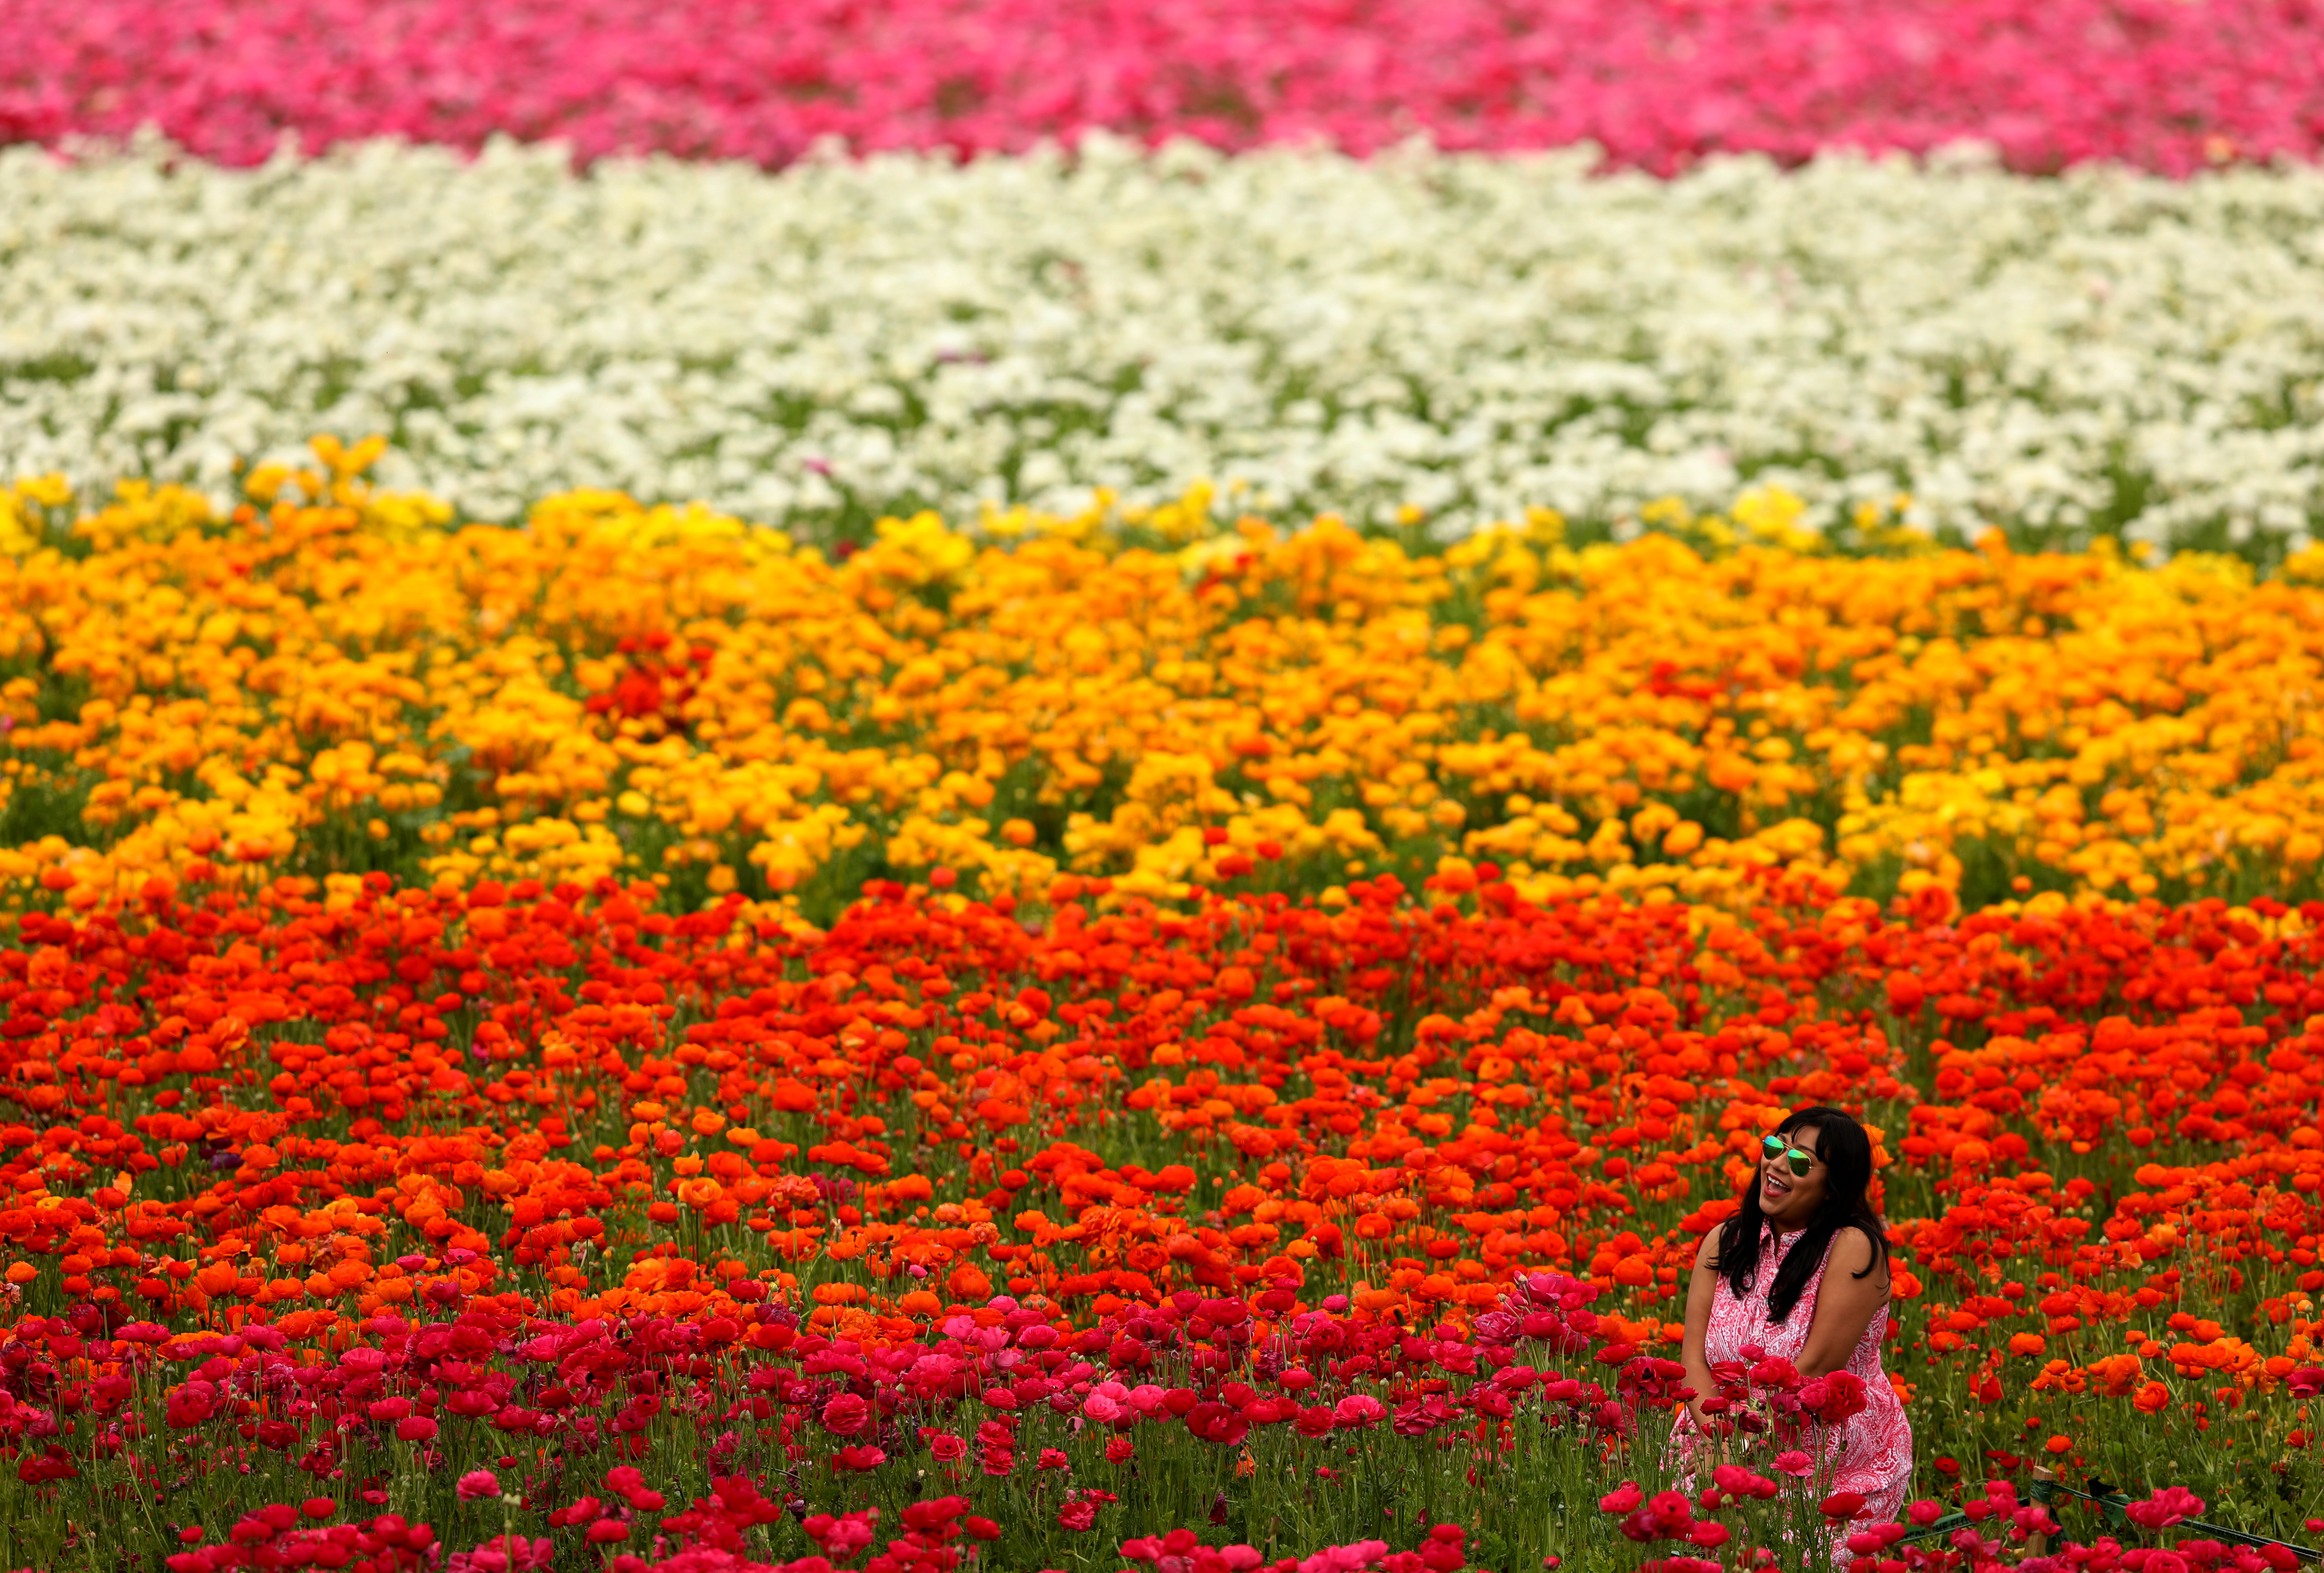 A  women sits in a field of giant tecolote ranunculus flowers at the Flower Fields in Carlsbad, Calif. on March 20, 2017.